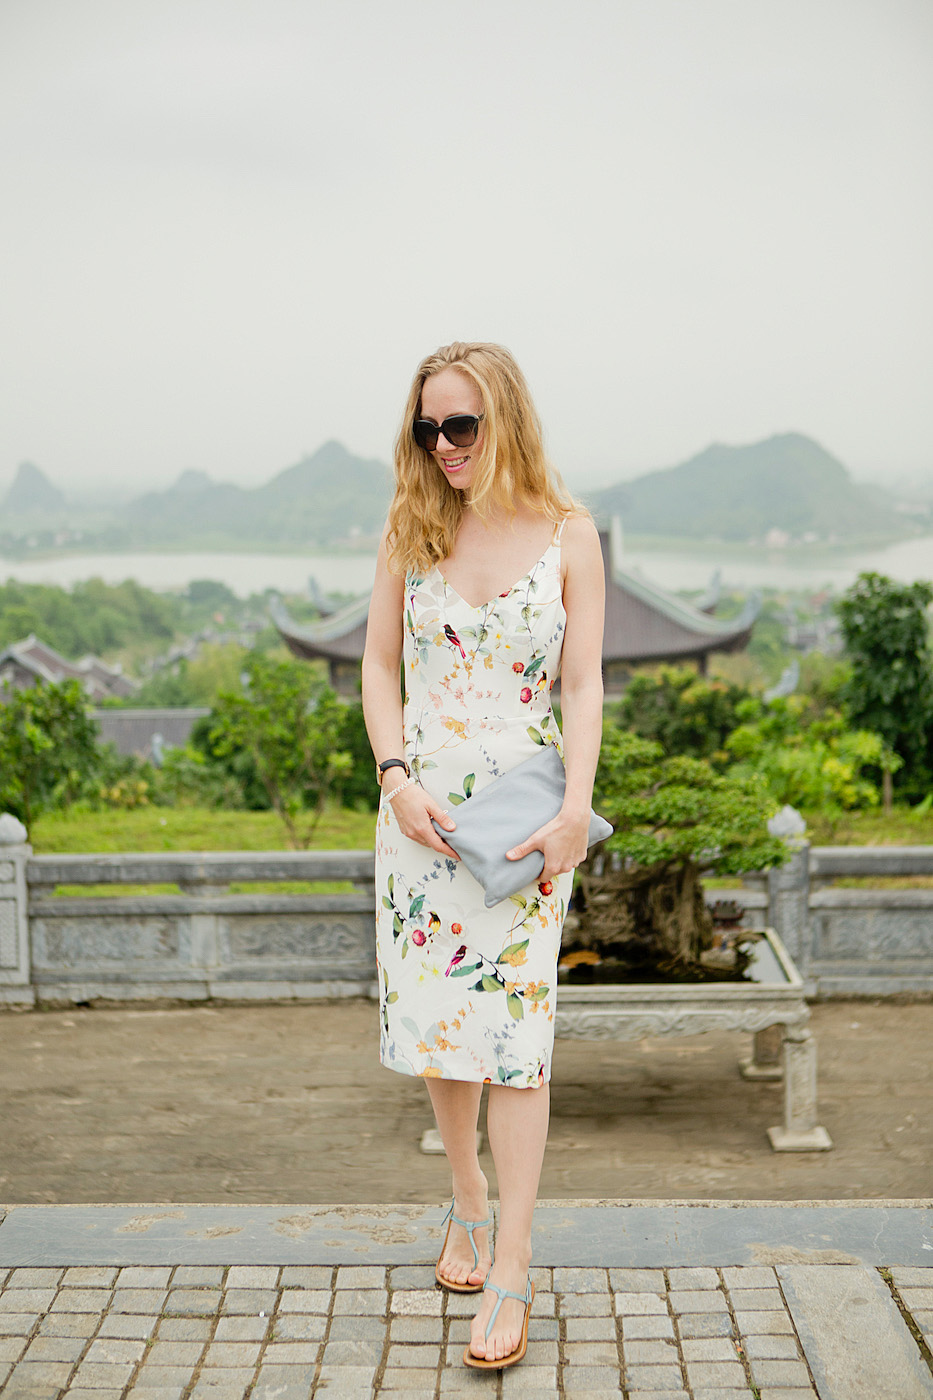 www.thegoldenbun.com | oasis floral dress, traveling outfit